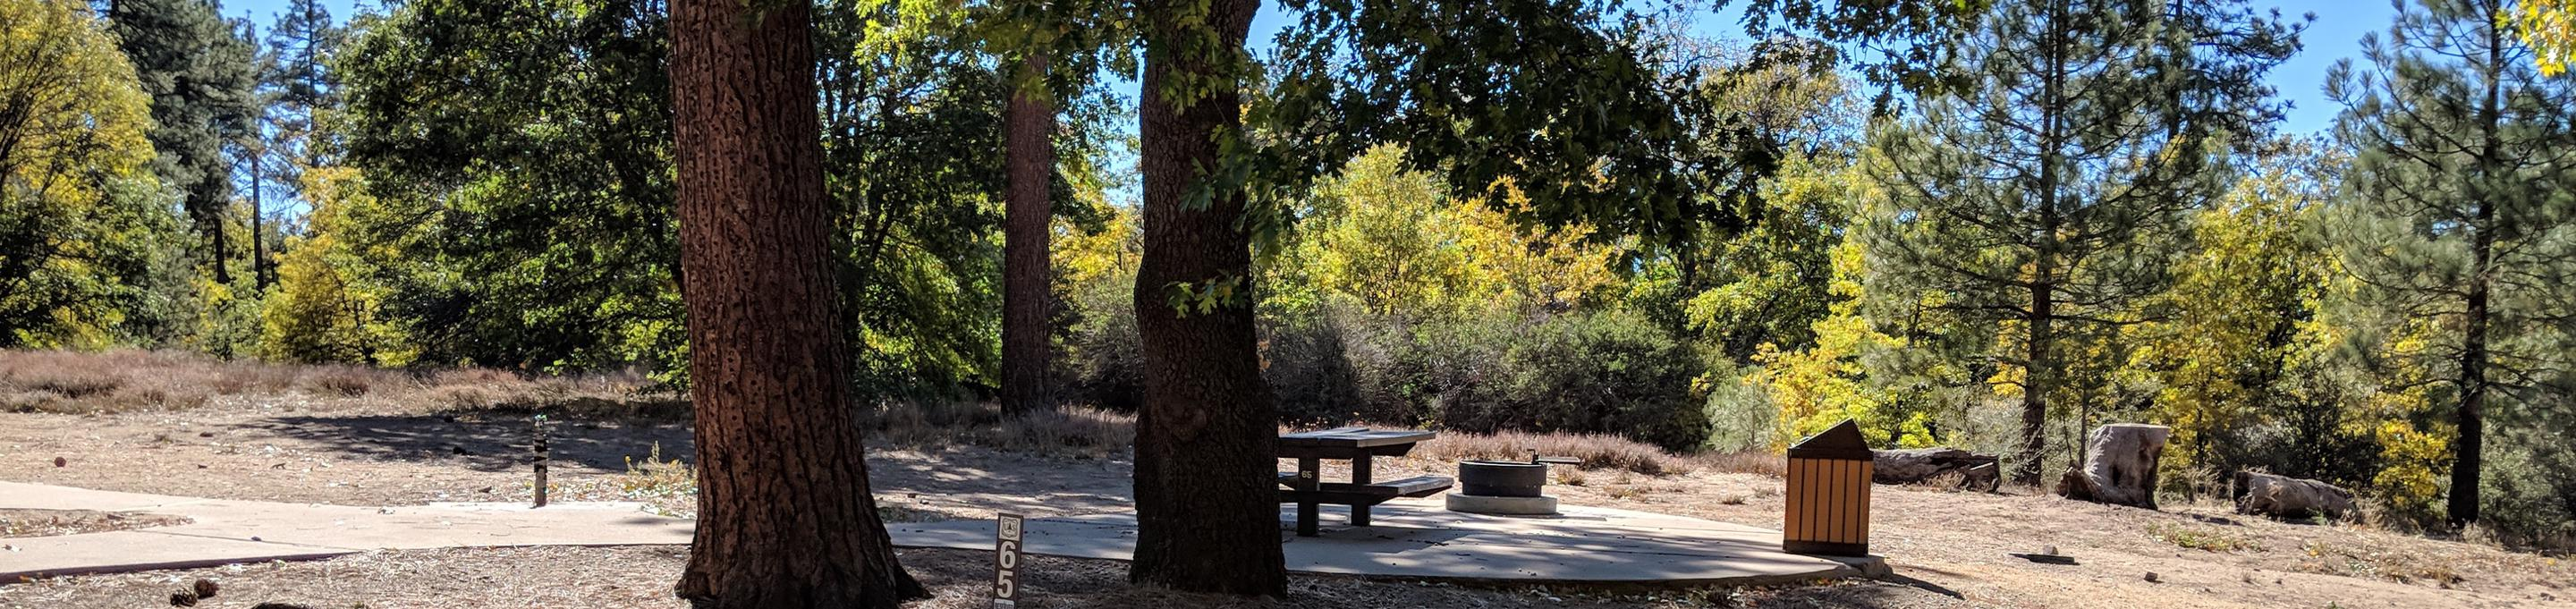 Laguna Campground site #65 wooded camping space view and picnic area.